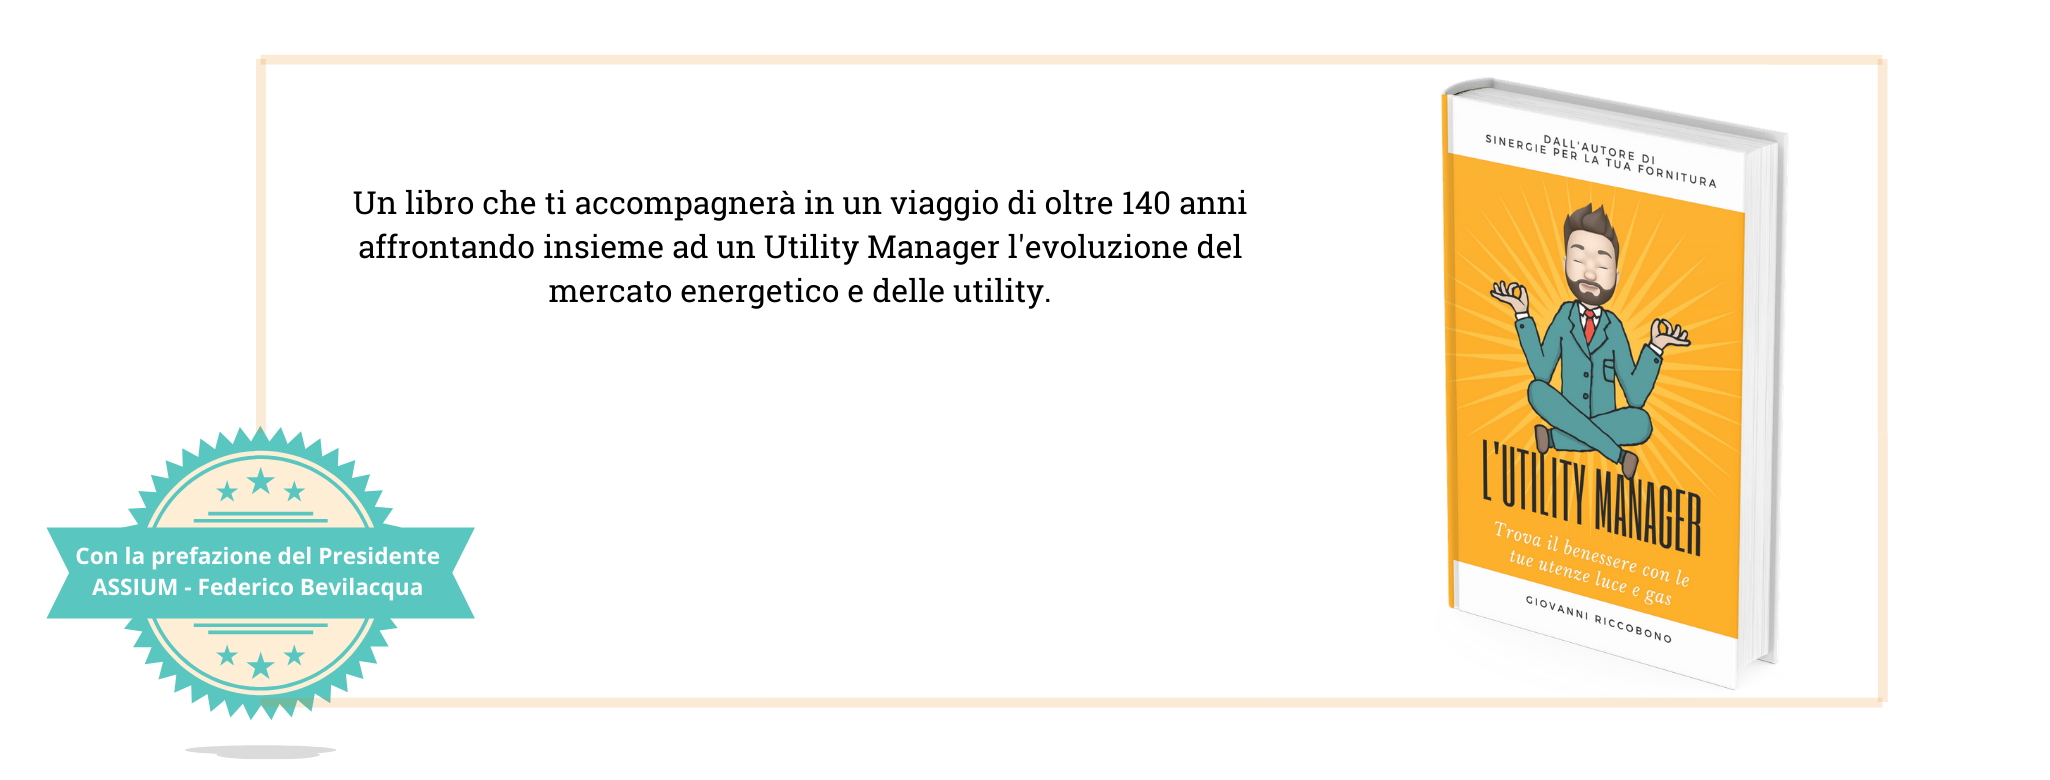 utility manager